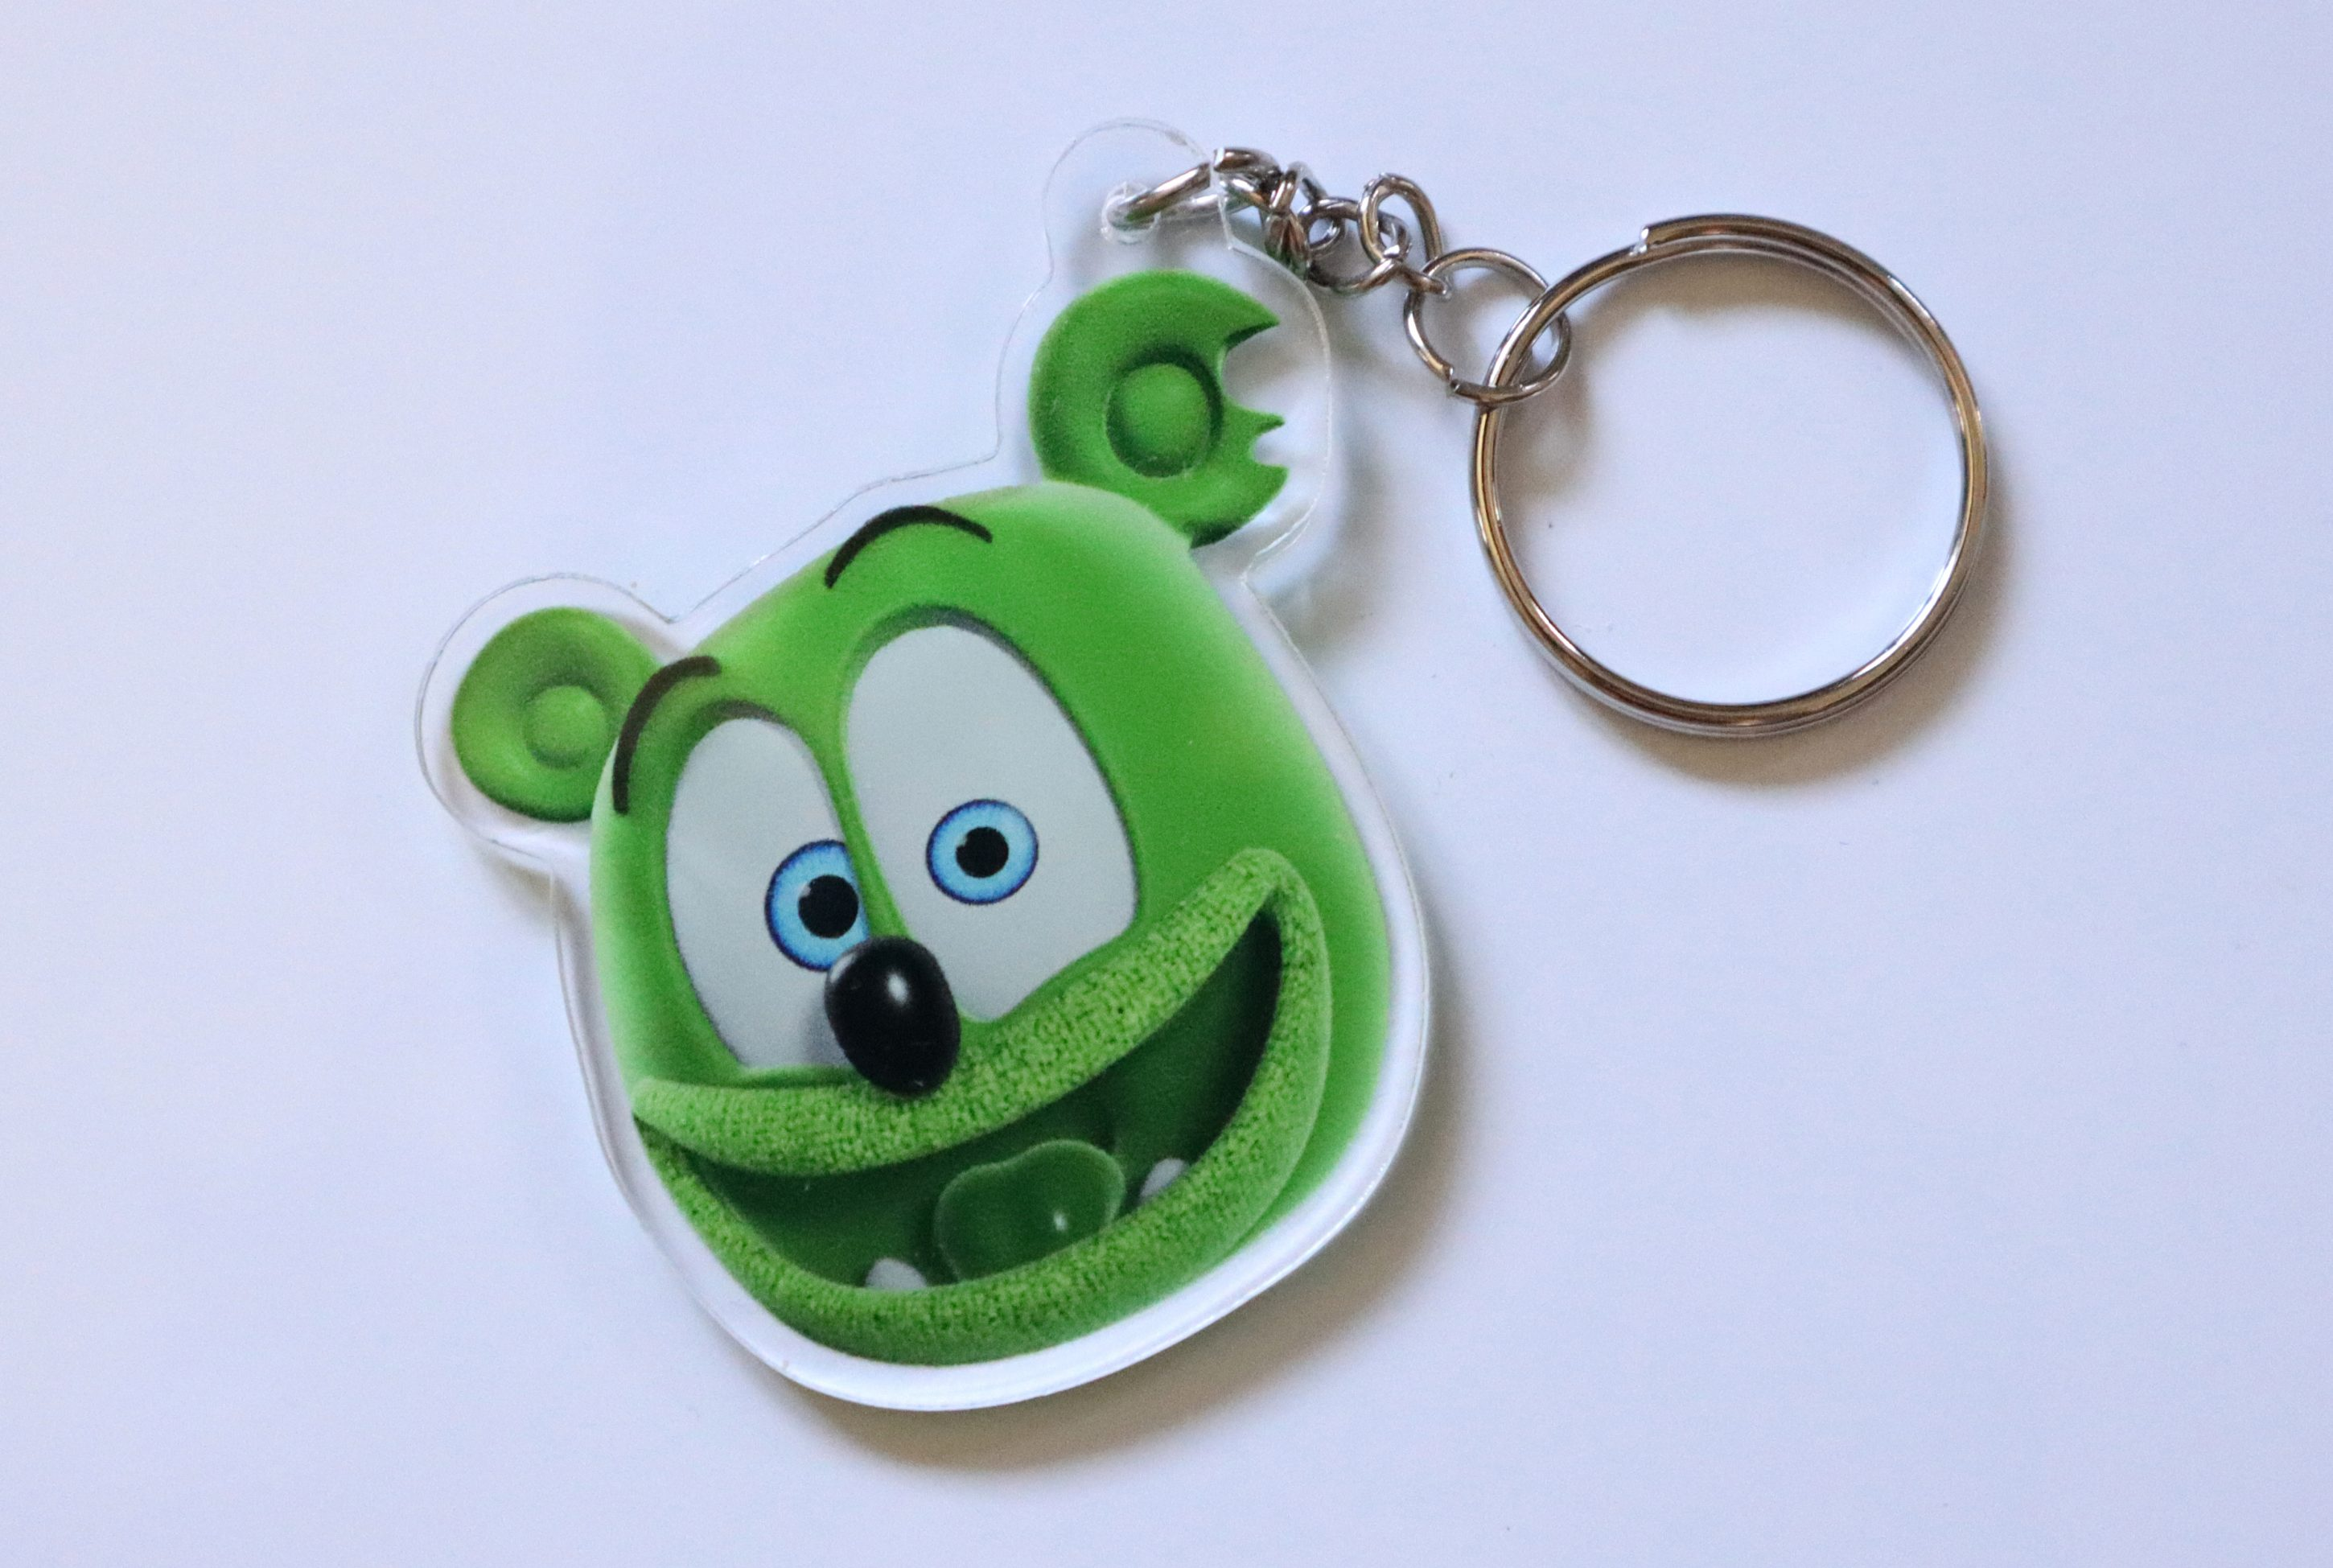 Gummibär (The Gummy Bear) Keychain